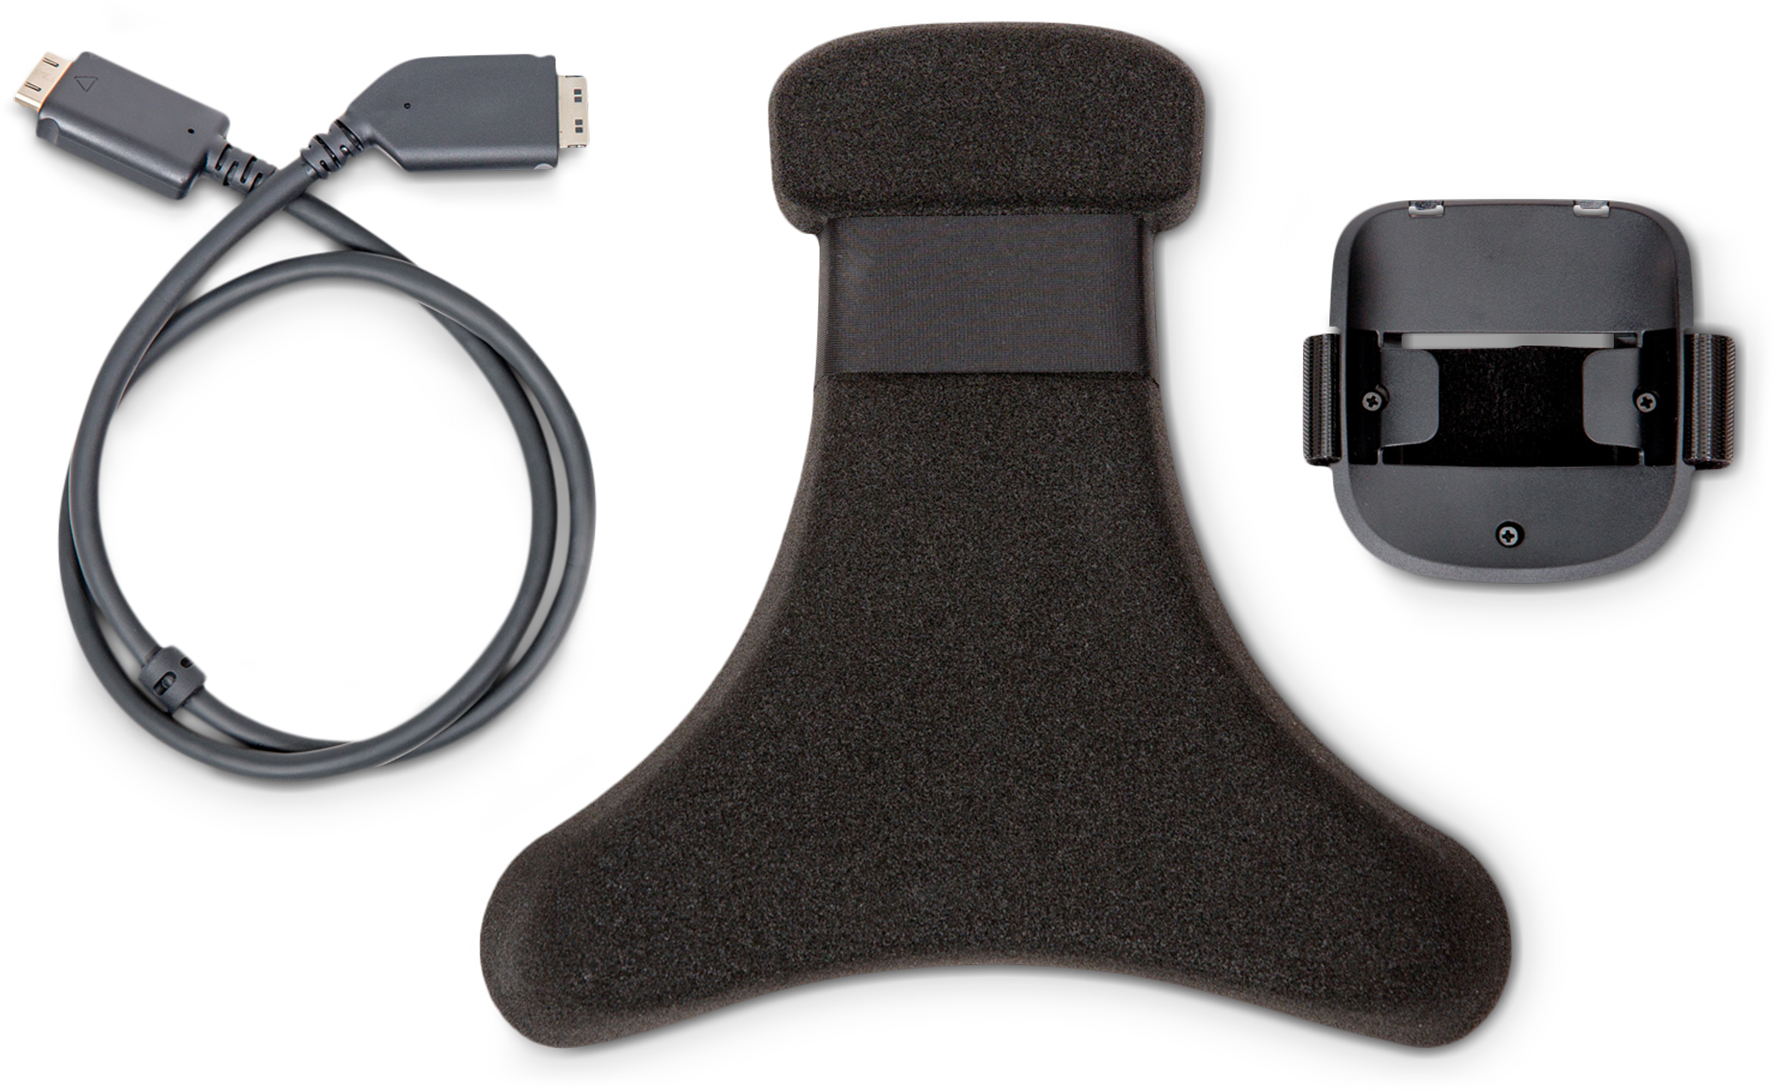 VIVE Pro HTC Wireless Adapter Attachment Kit includes a Cable, a Cradle and a Pad Cushion